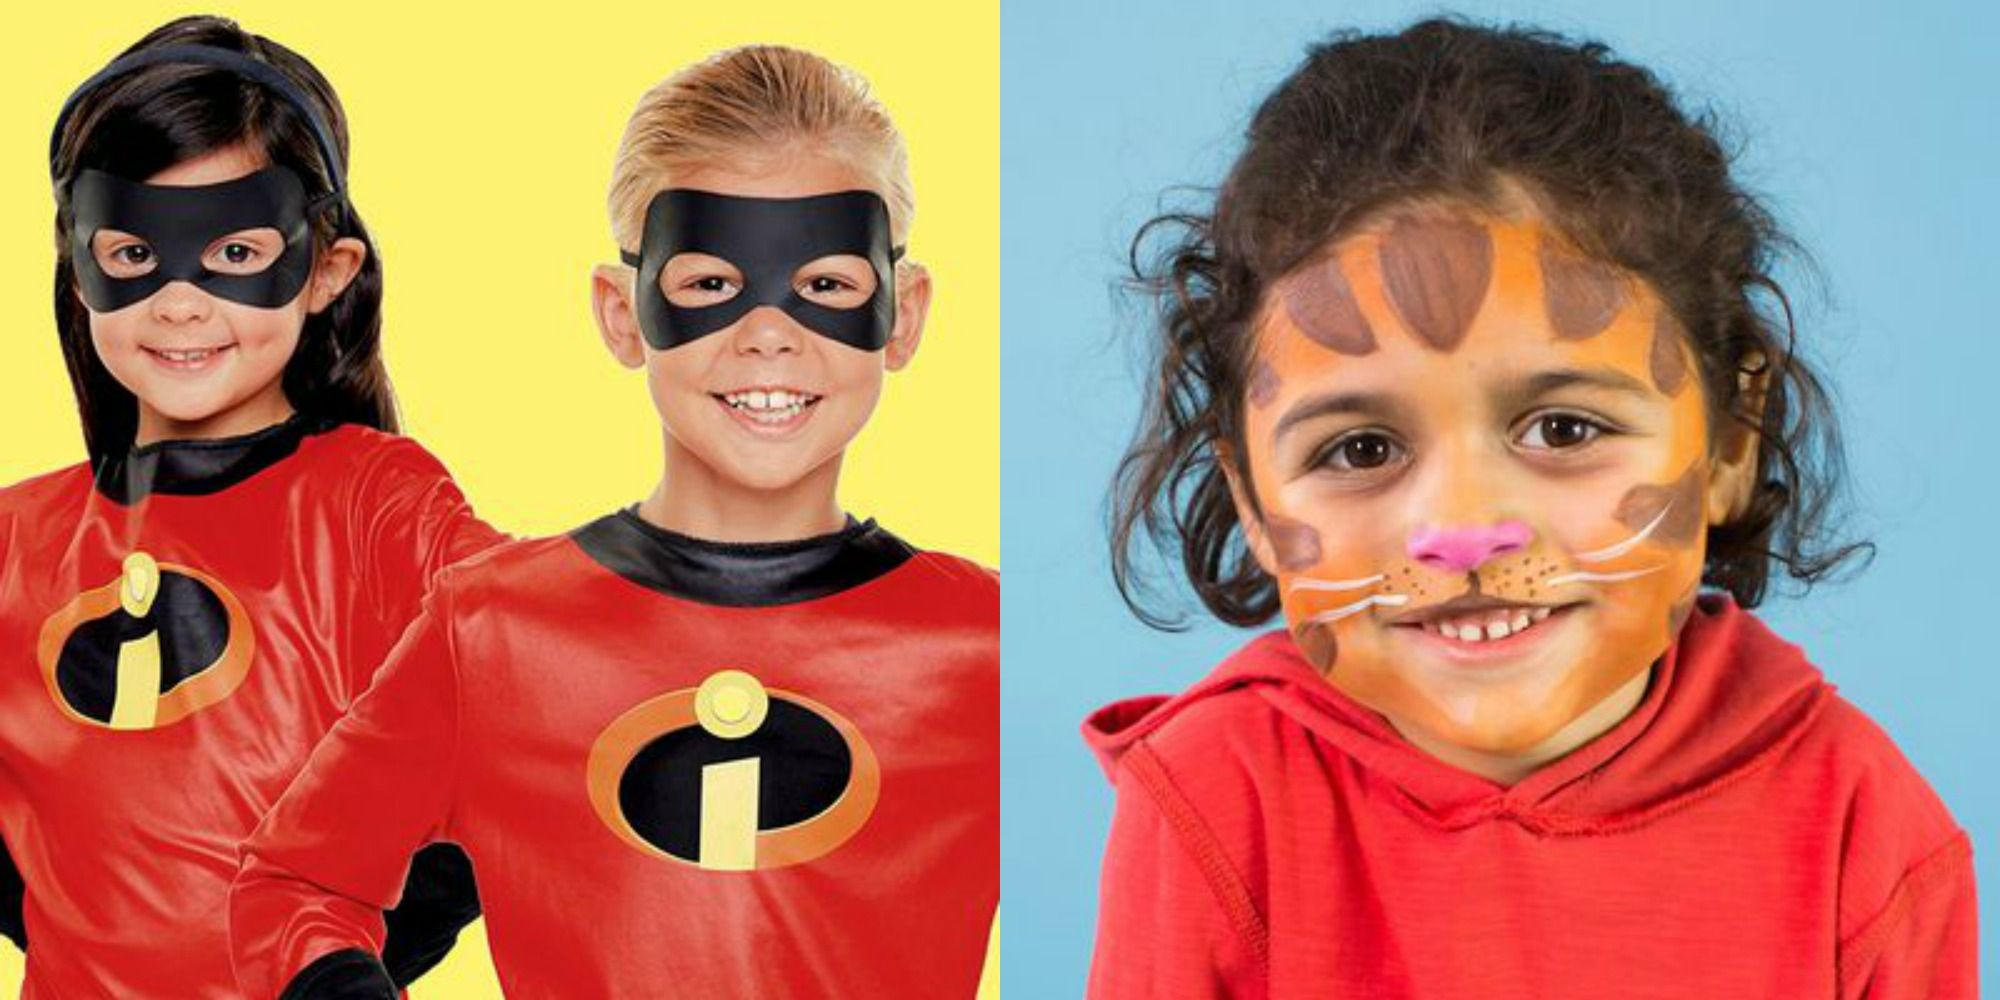 26 best halloween costumes for kids 2018 - cute ideas for childrens